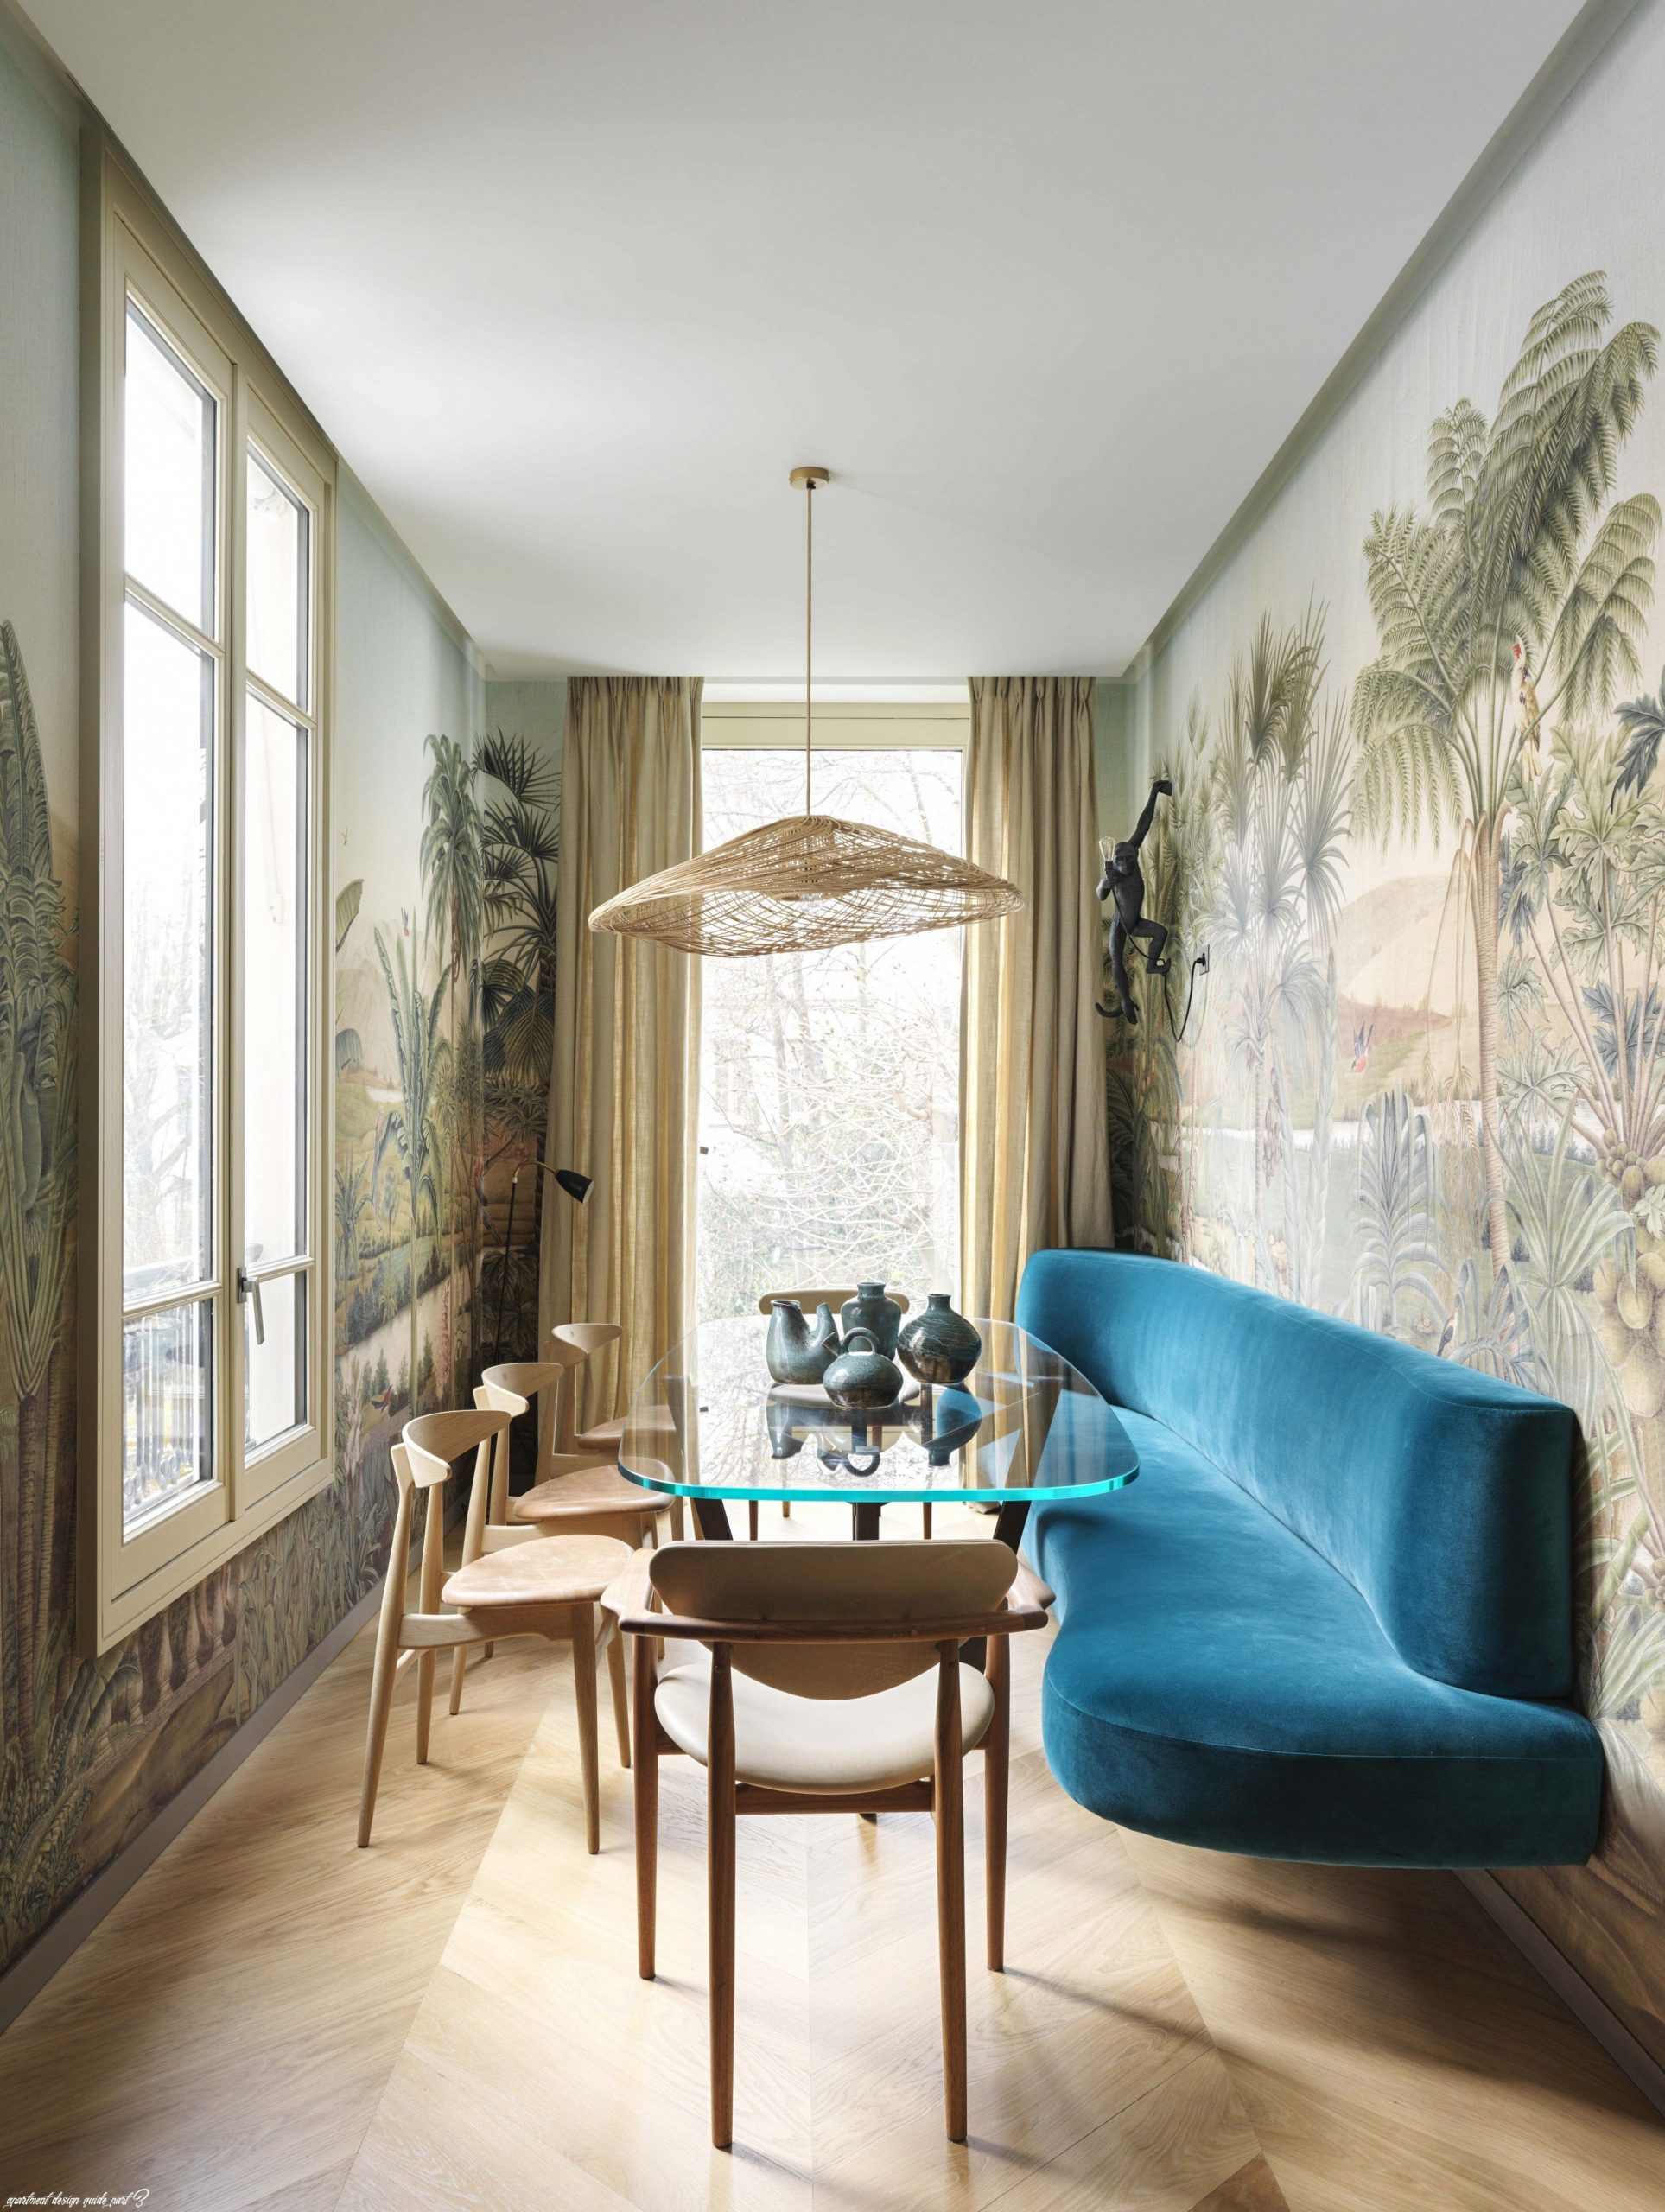 10 Apartment Design Guide Part 10 in 10  Dining room design  - Apartment Design Guide Part 3